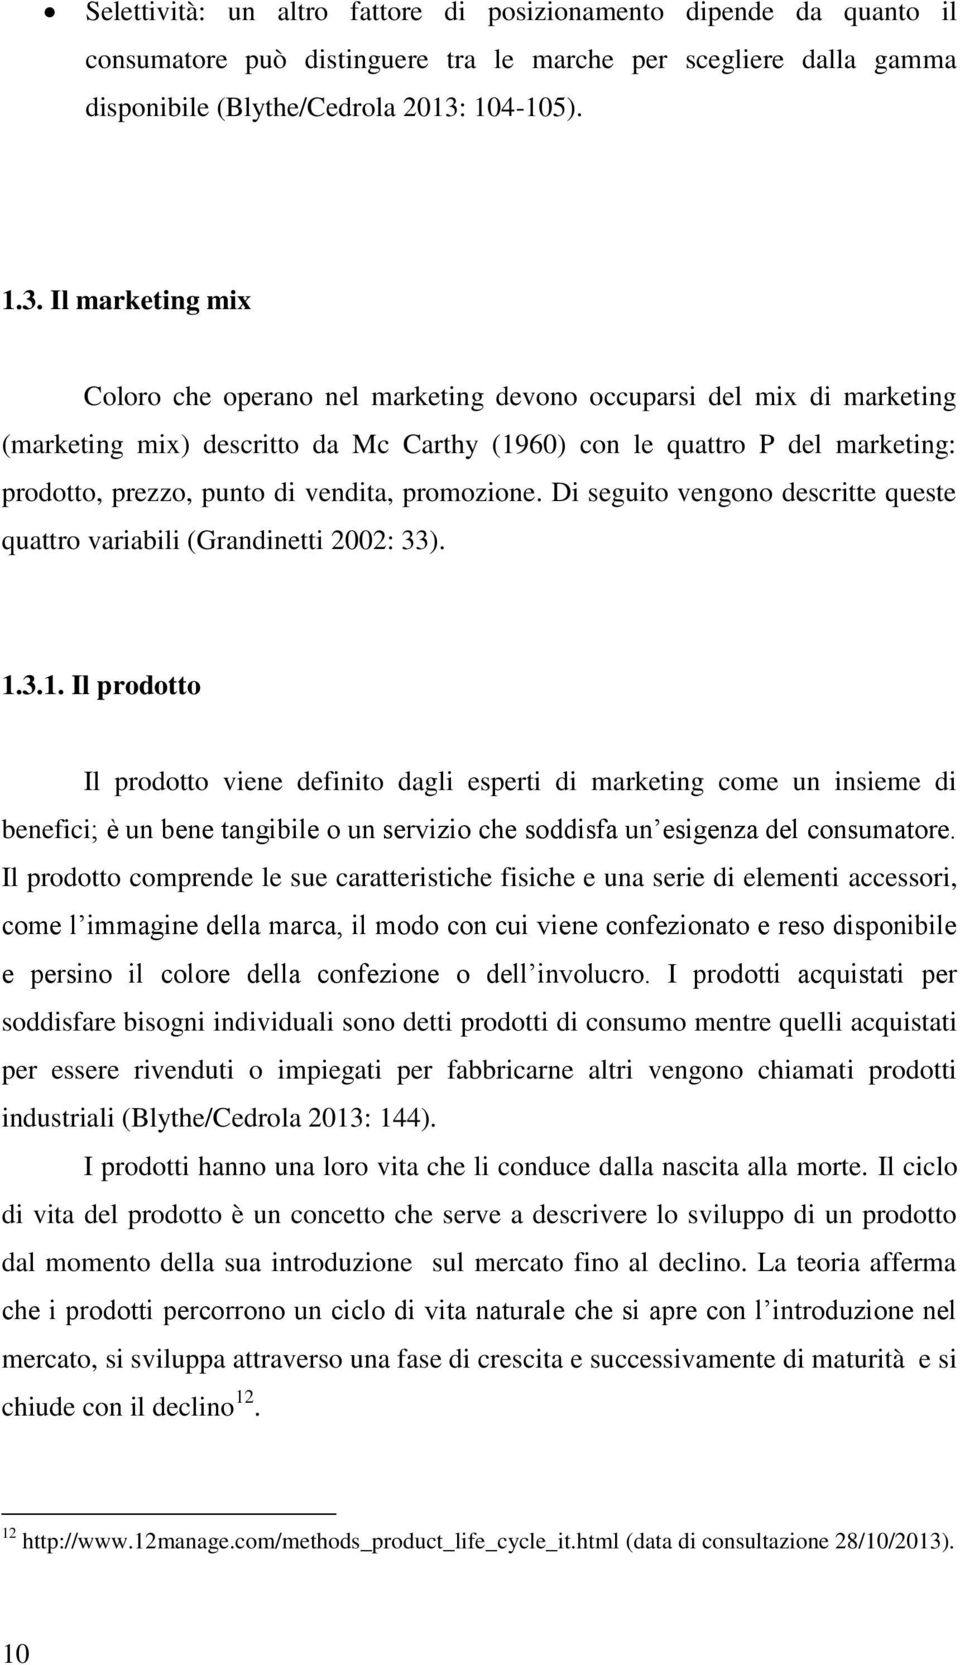 Il marketing mix Coloro che operano nel marketing devono occuparsi del mix di marketing (marketing mix) descritto da Mc Carthy (1960) con le quattro P del marketing: prodotto, prezzo, punto di